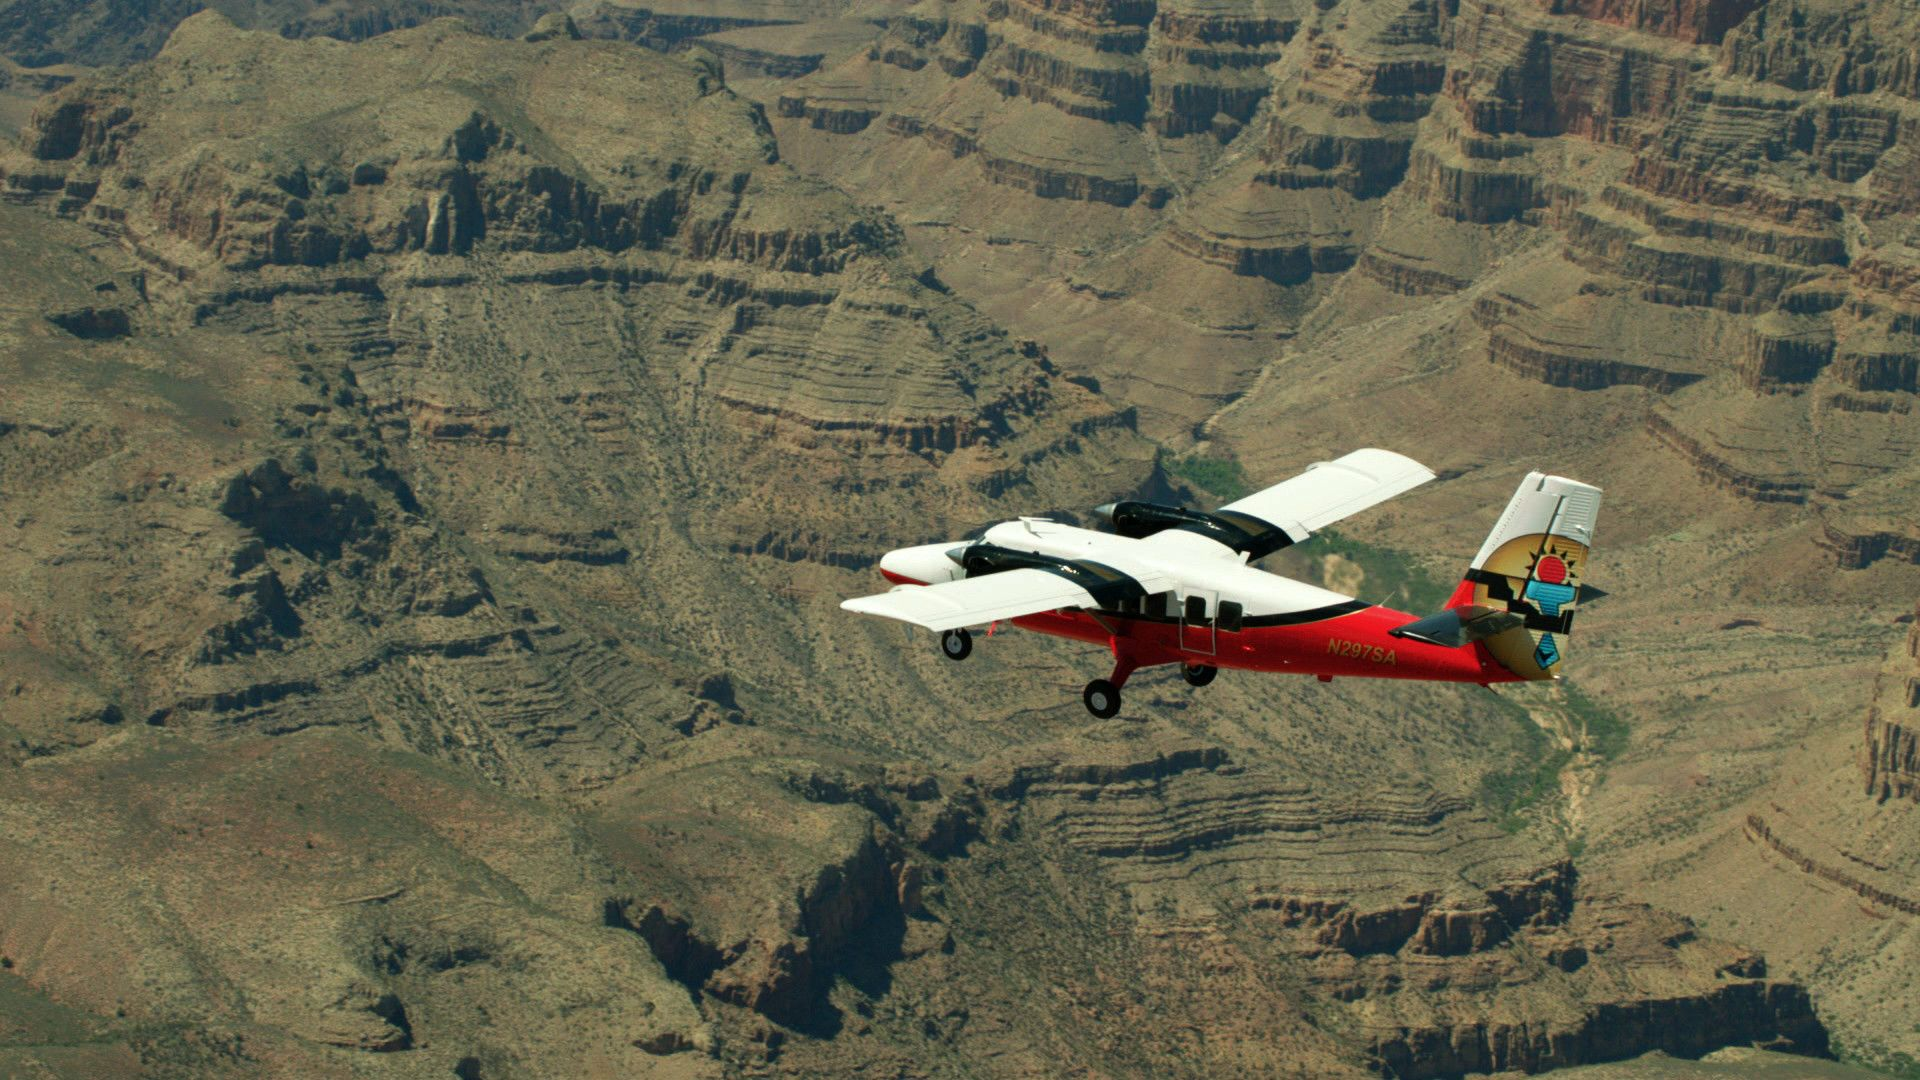 An airplane soaring high above the Grand Canyon